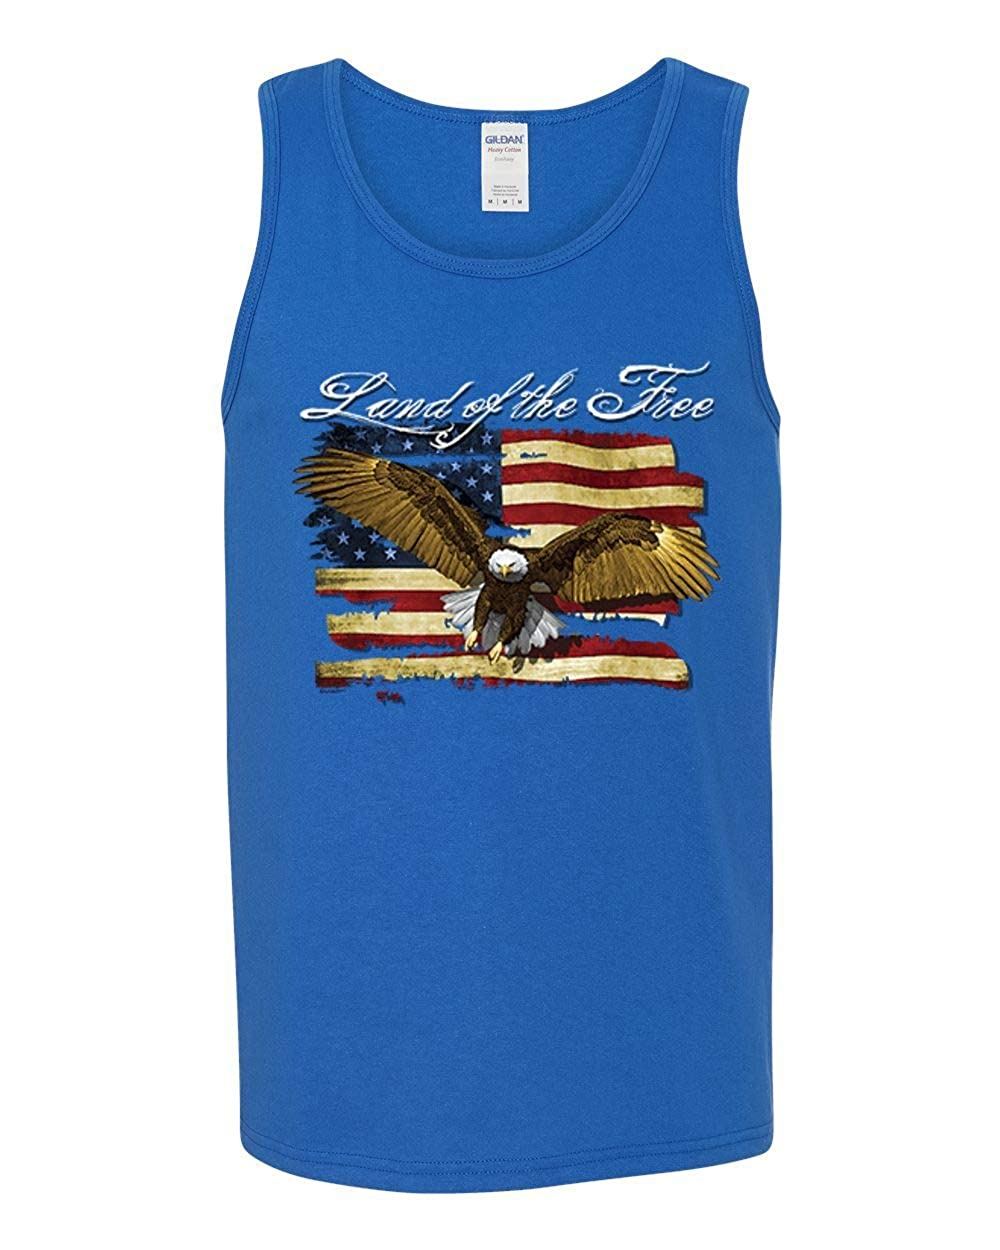 USA Flag Eagle Land of The Free Mens Americana//American Pride Graphic Tank Top